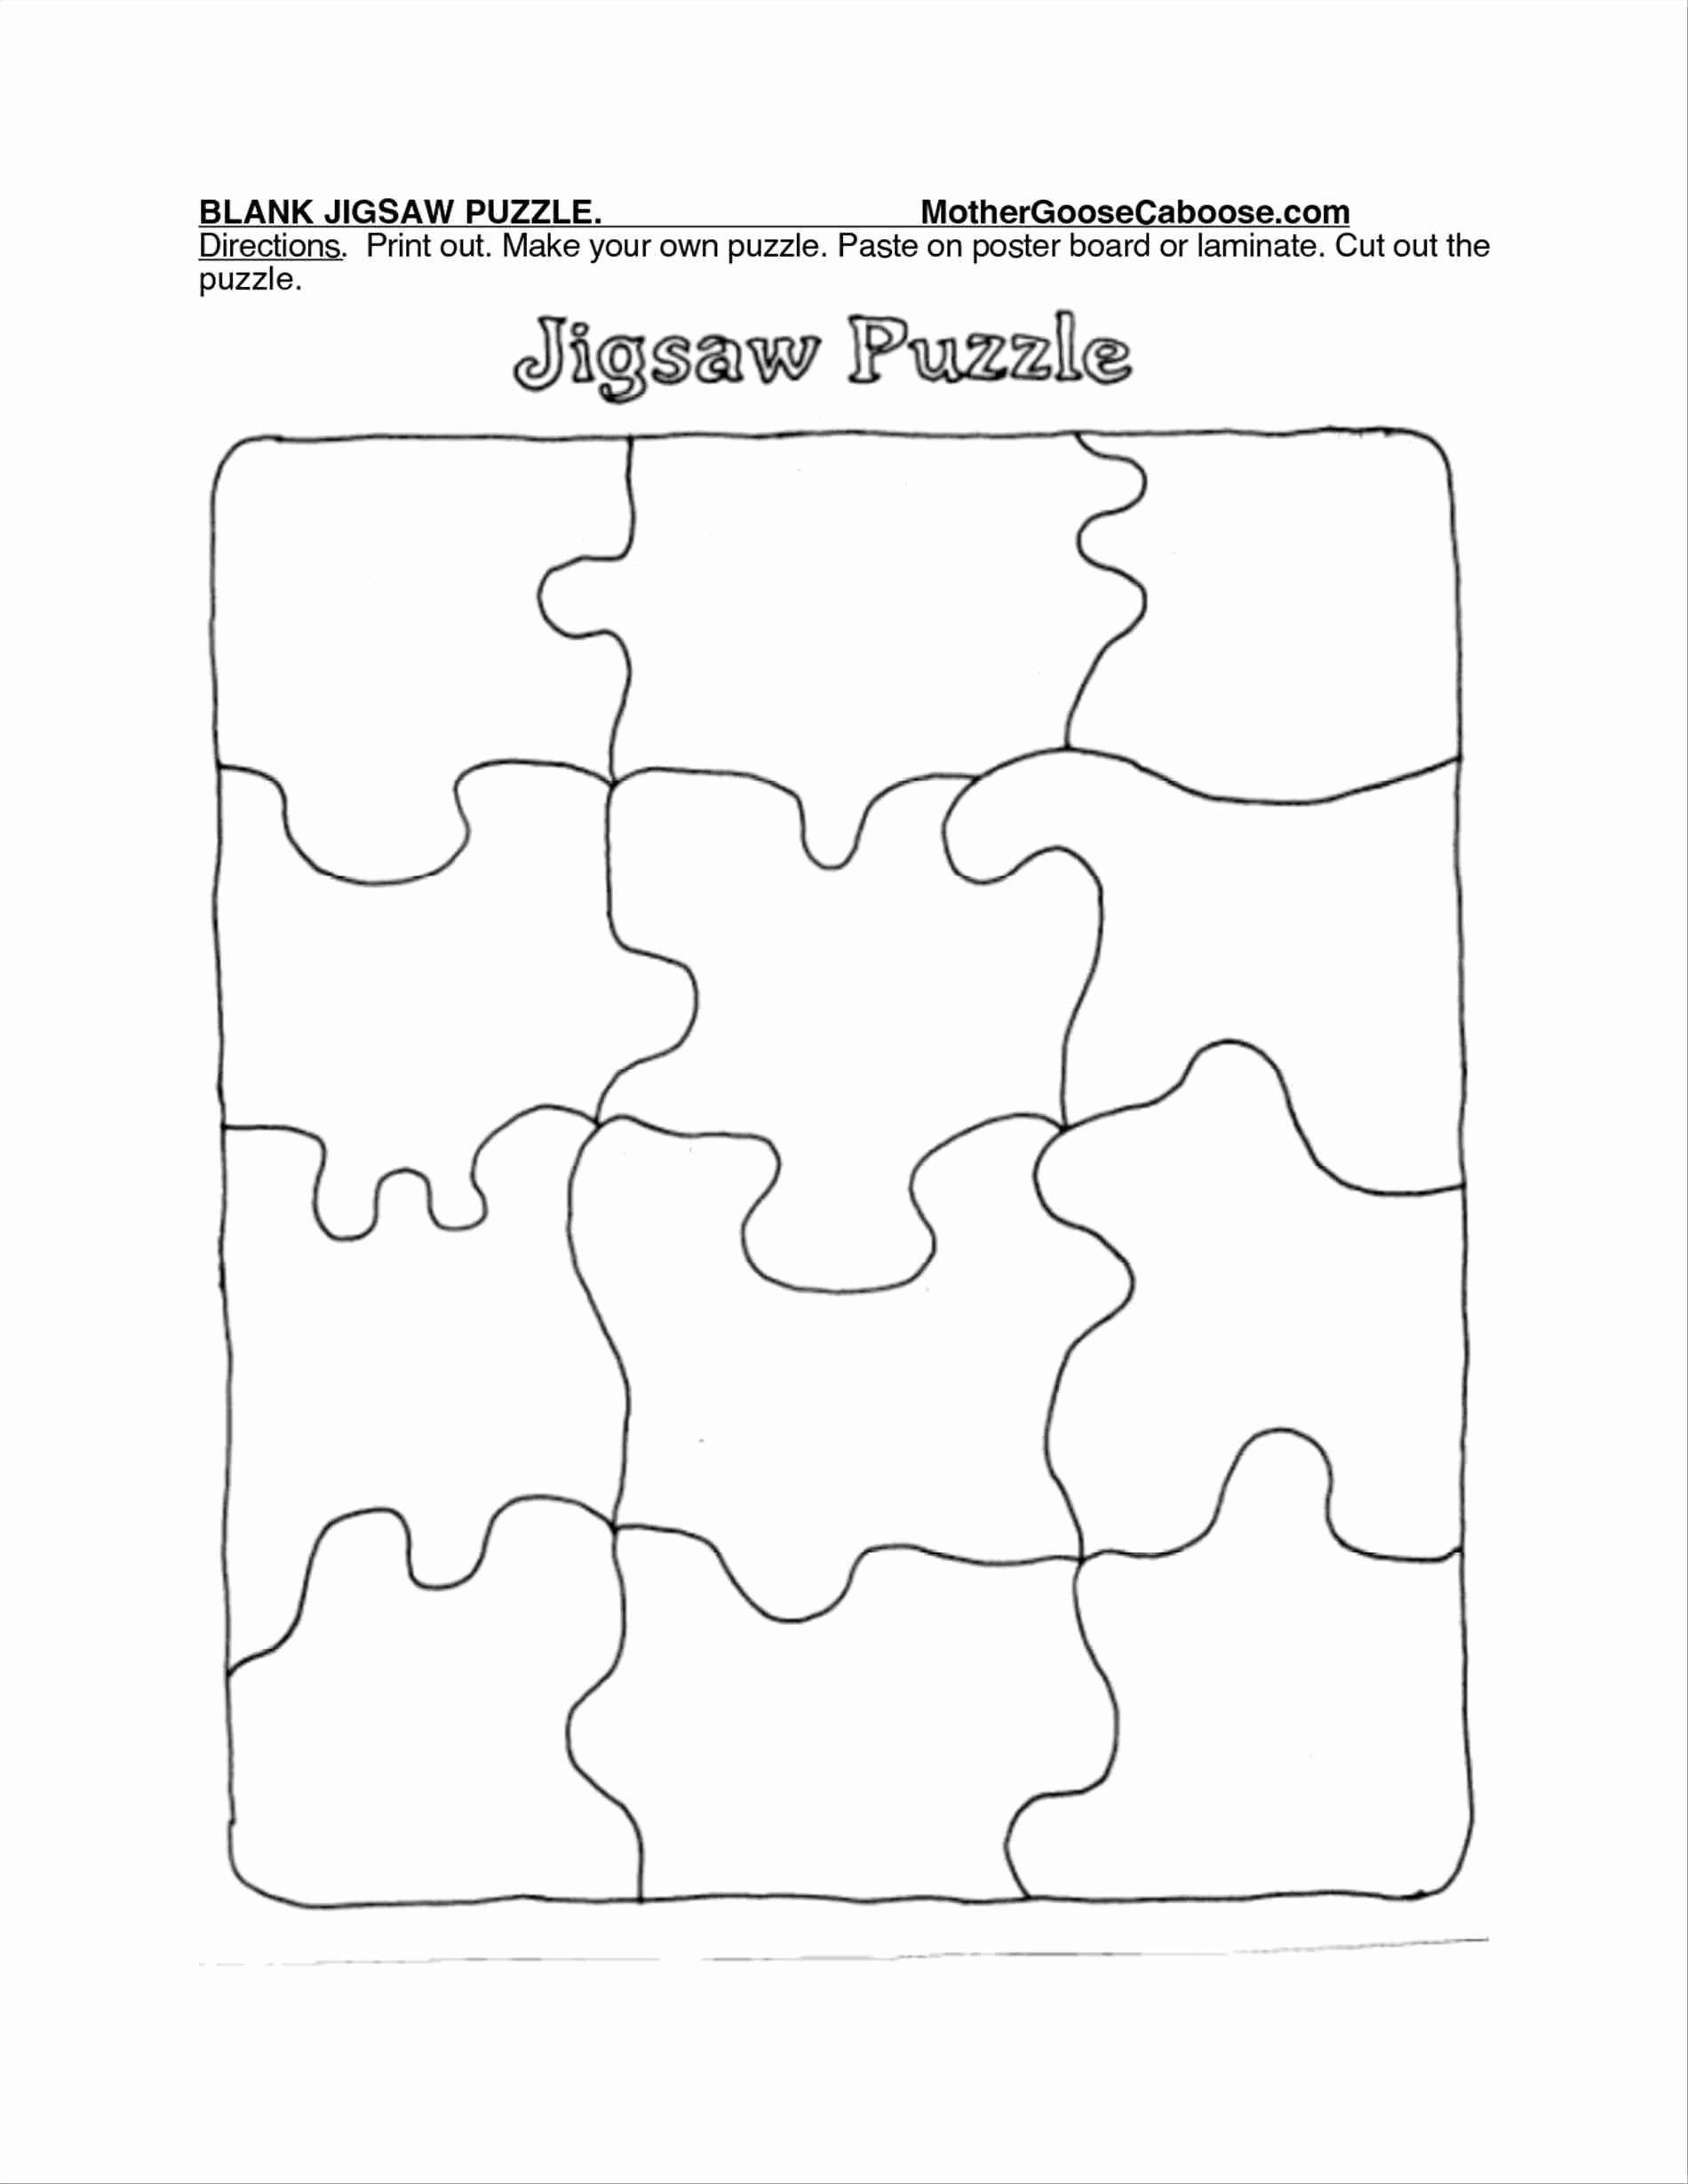 9 Piece Puzzle Template Lovely 9 Piece Jigsaw Puzzle Template